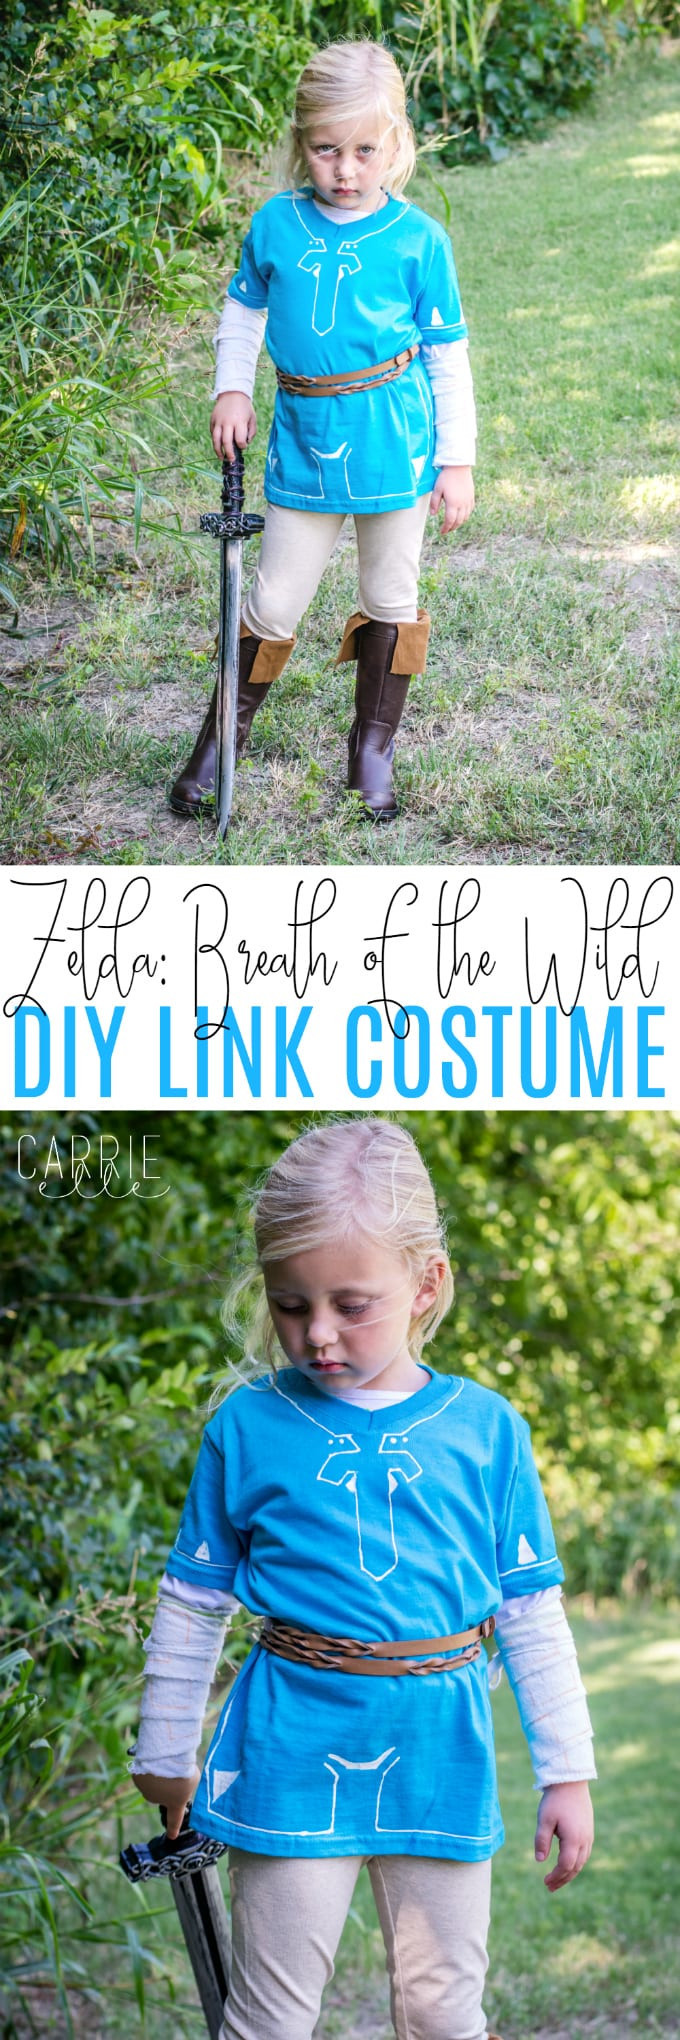 Best ideas about DIY Zelda Costume . Save or Pin DIY Link Costume Breath of the Wild Carrie Elle Now.